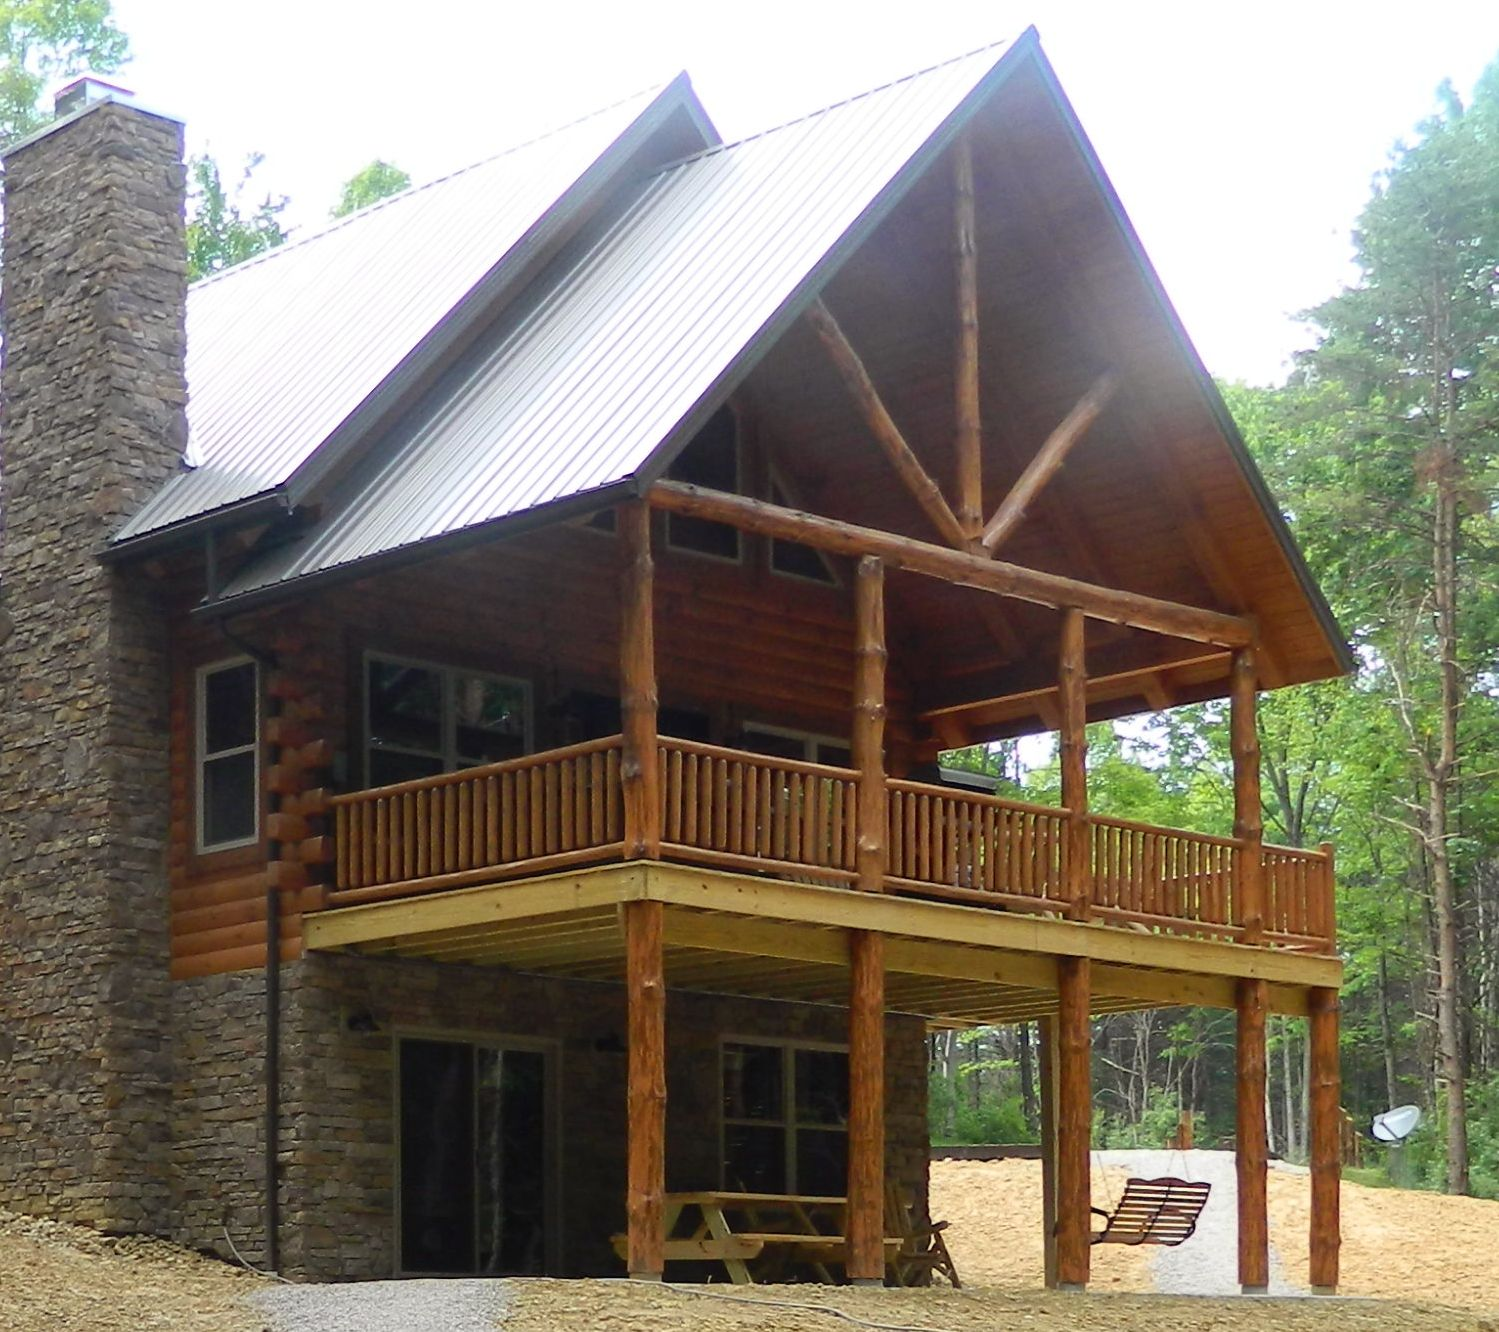 in gatlburg cabins for thanksgivg cabin rent texas ohio luxury log cheap forge new rentals pigeon